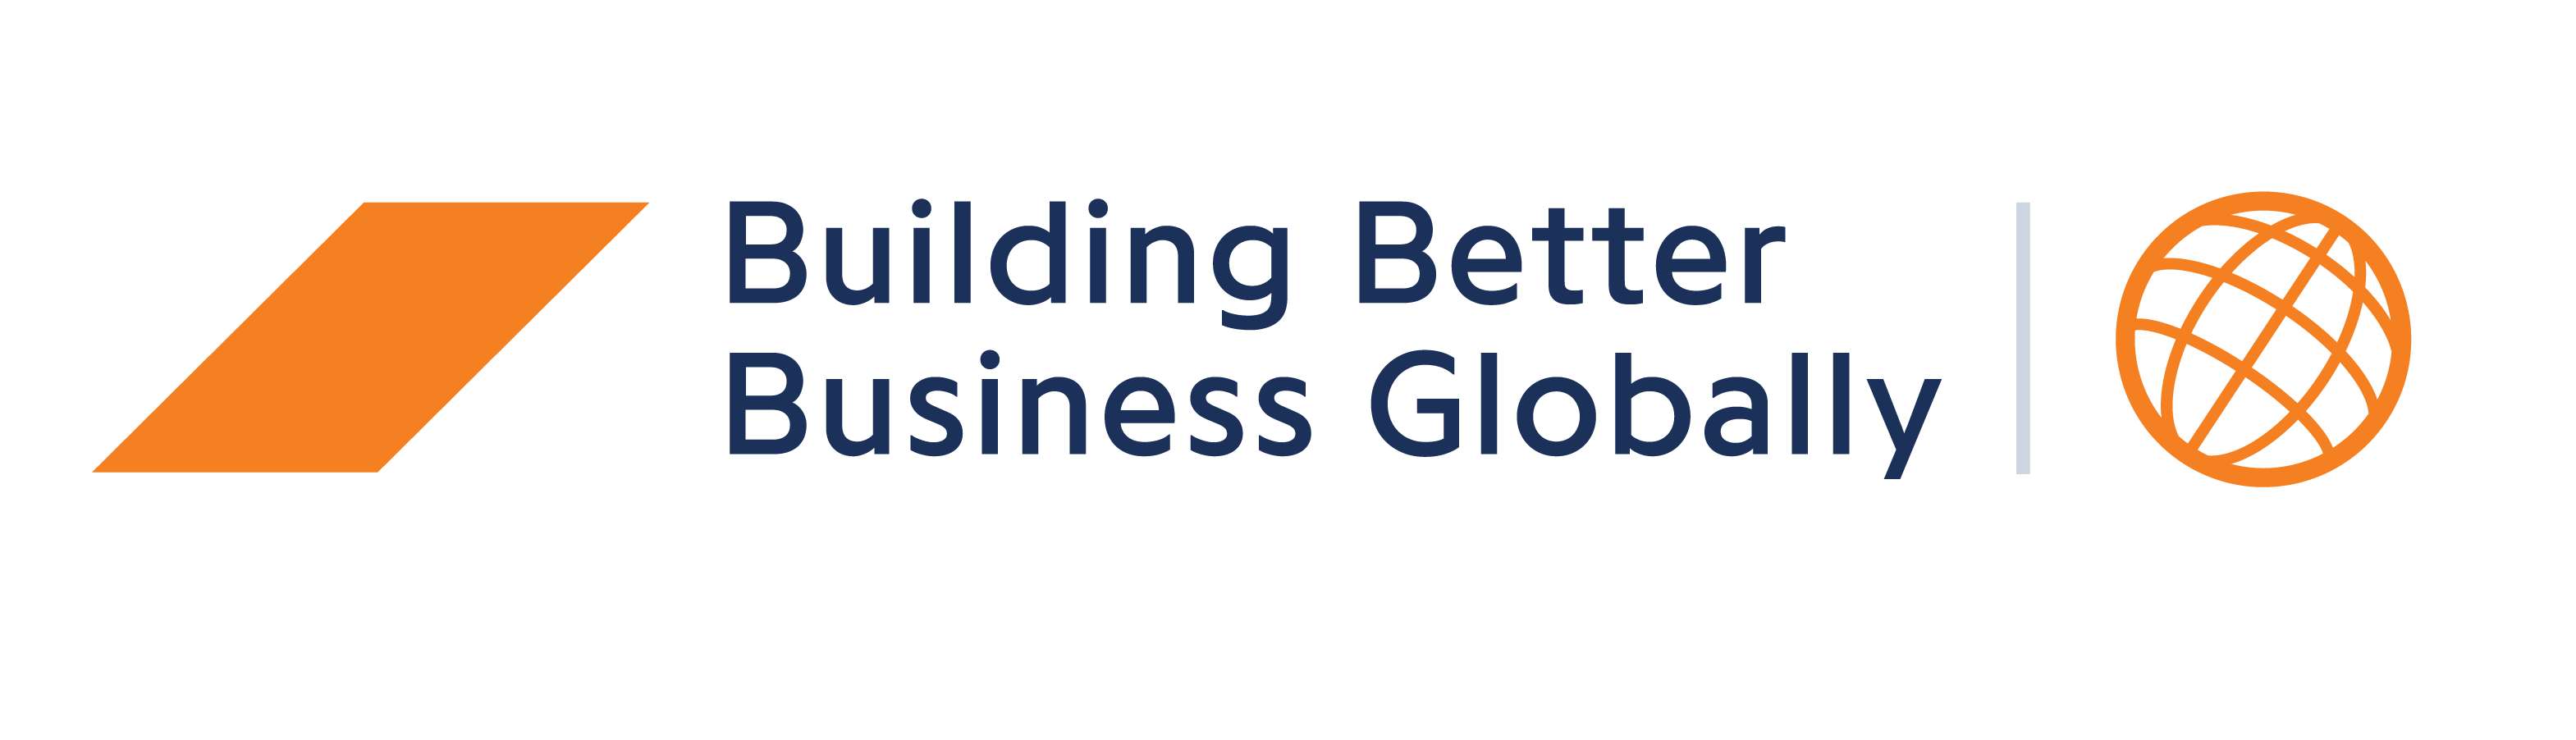 Building Better Business Globally logo